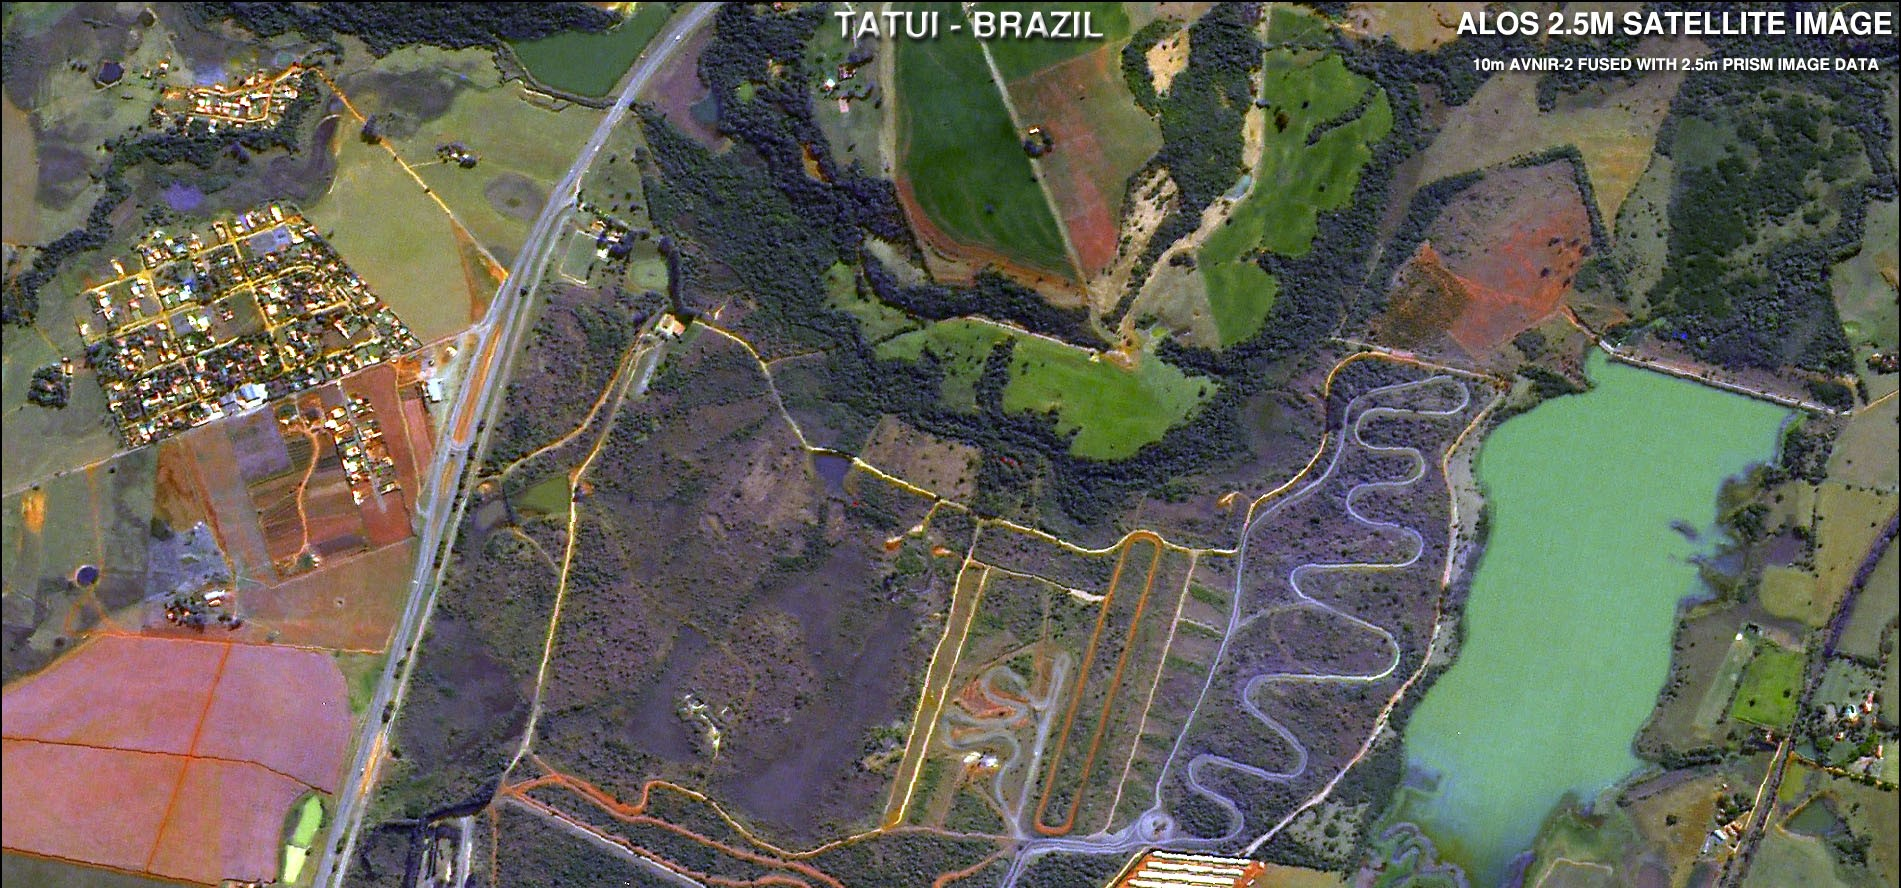 Red Sludge  Tatui, Brazil